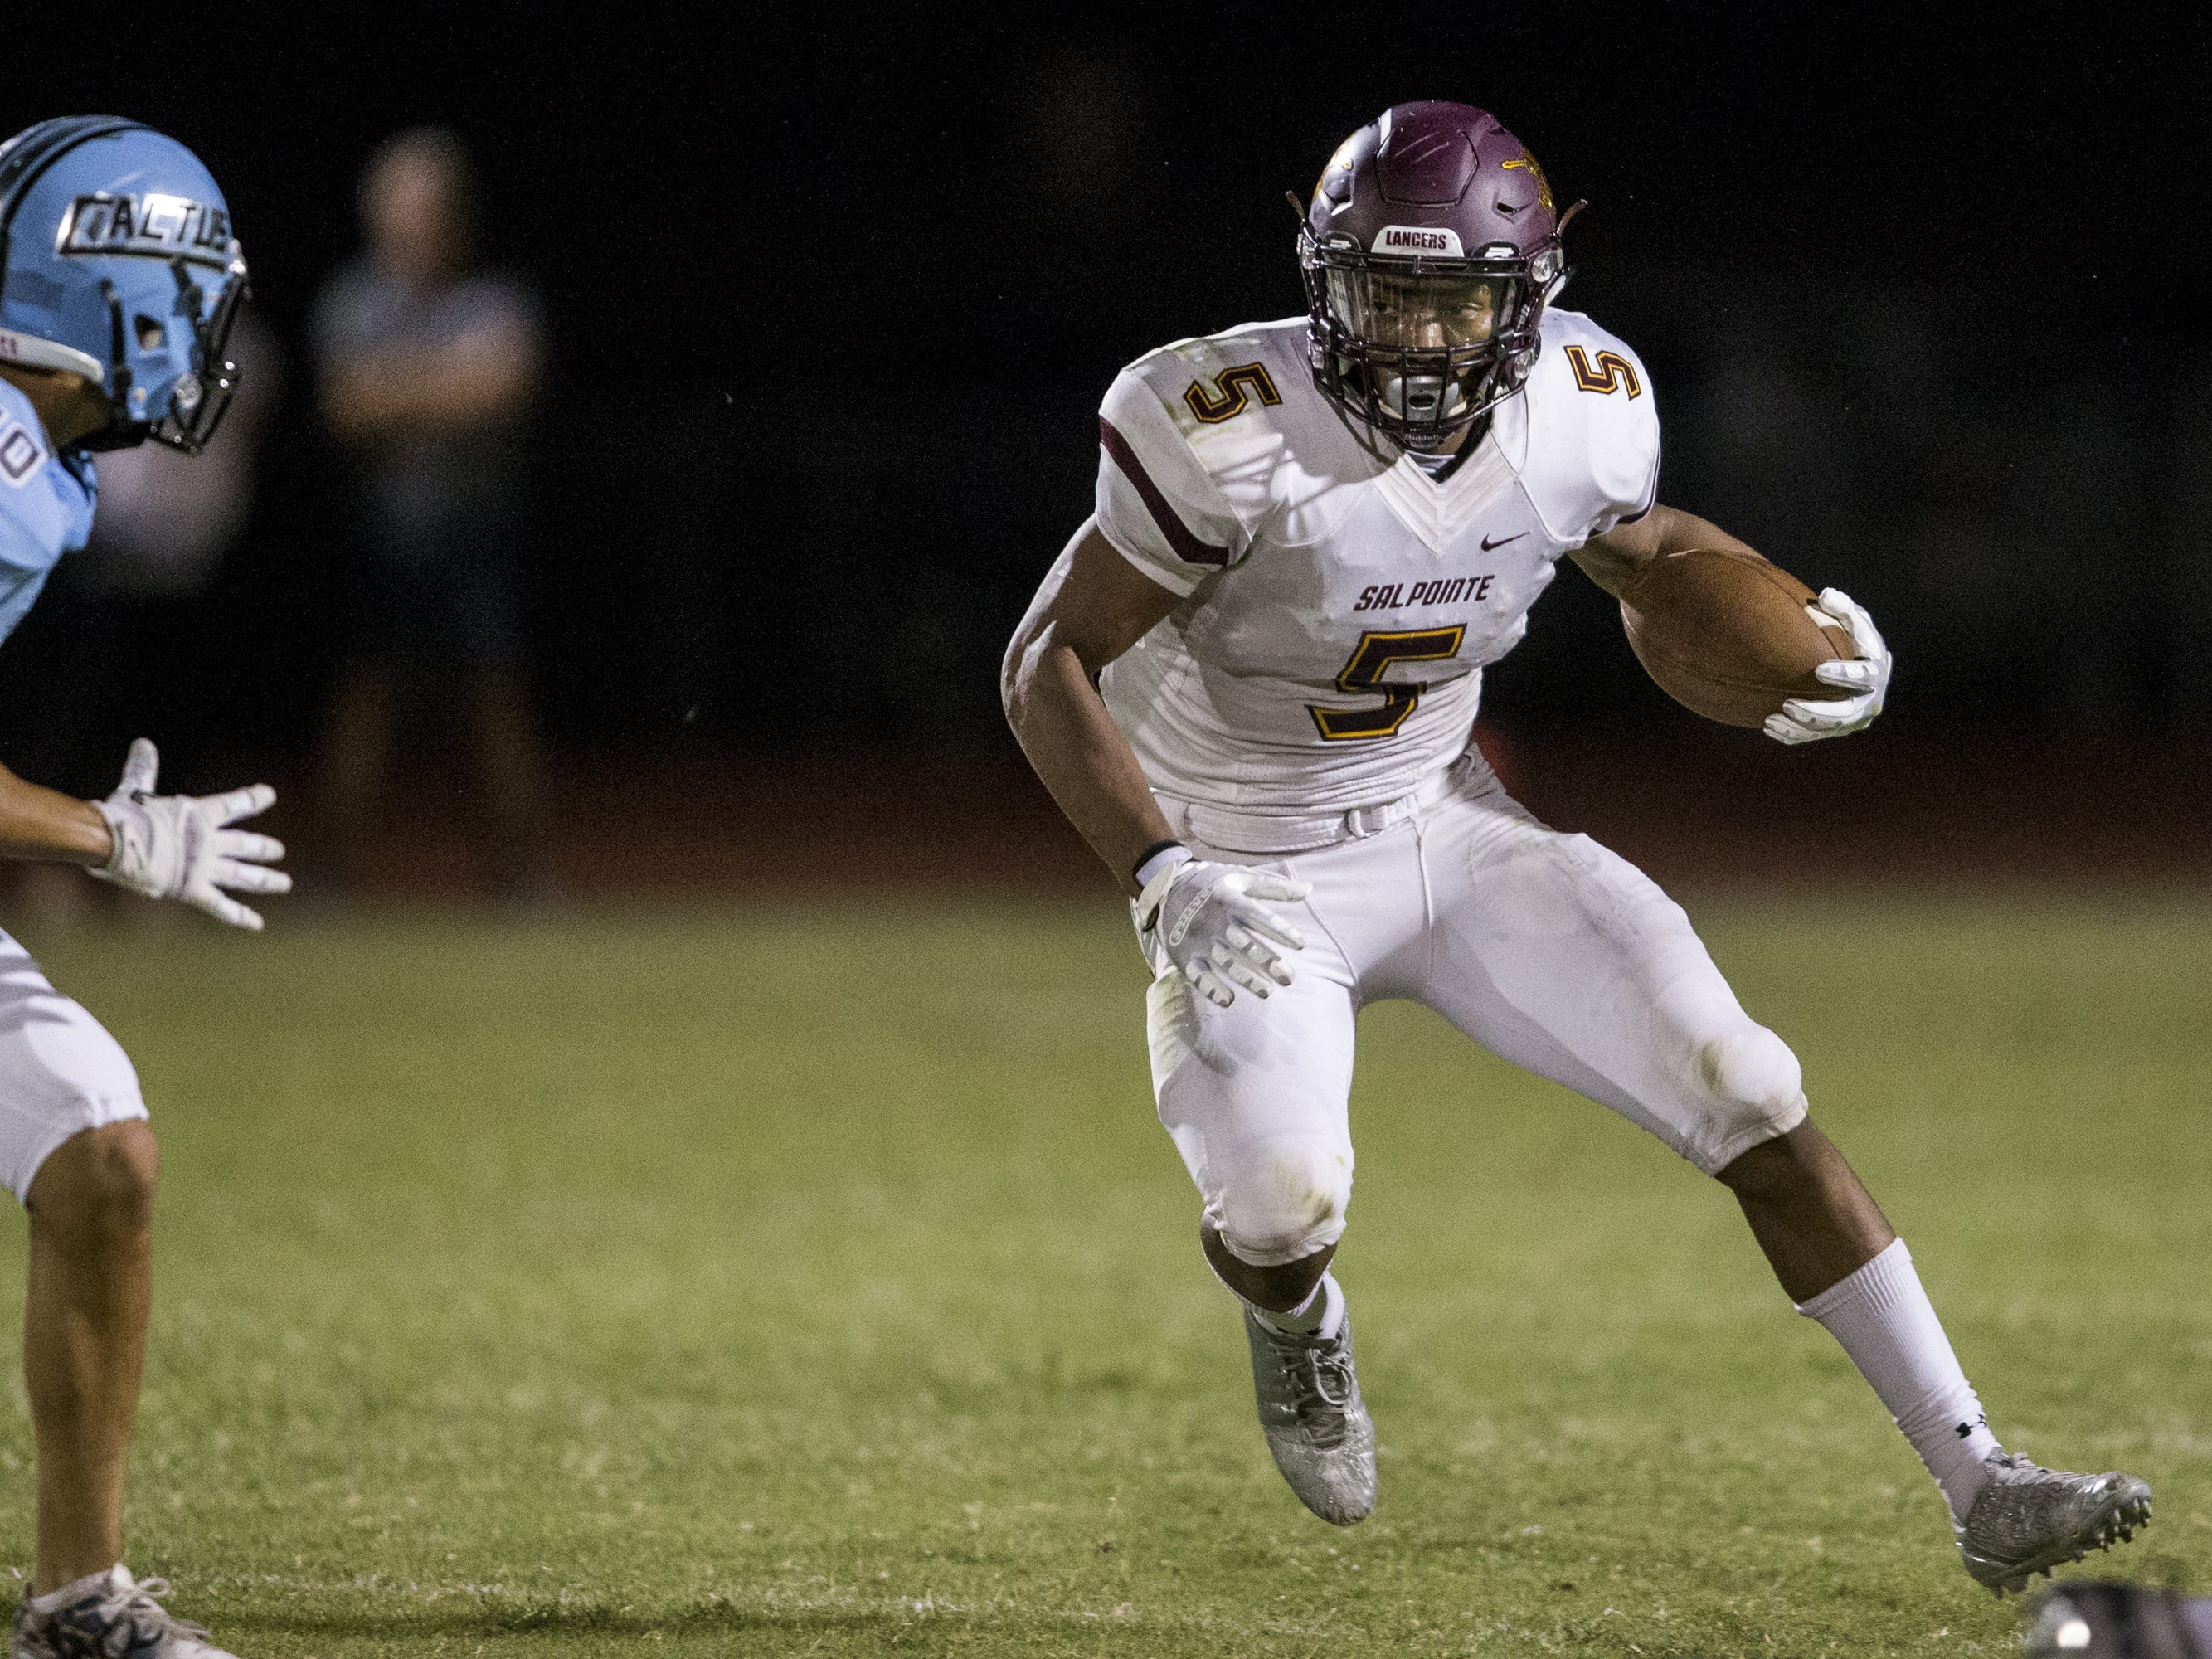 Salpointe's Bijan Robinson rushes against Cactus in the 1st quarter on Friday, Sept. 14, 2018, at Cactus High School in Glendale, Ariz.